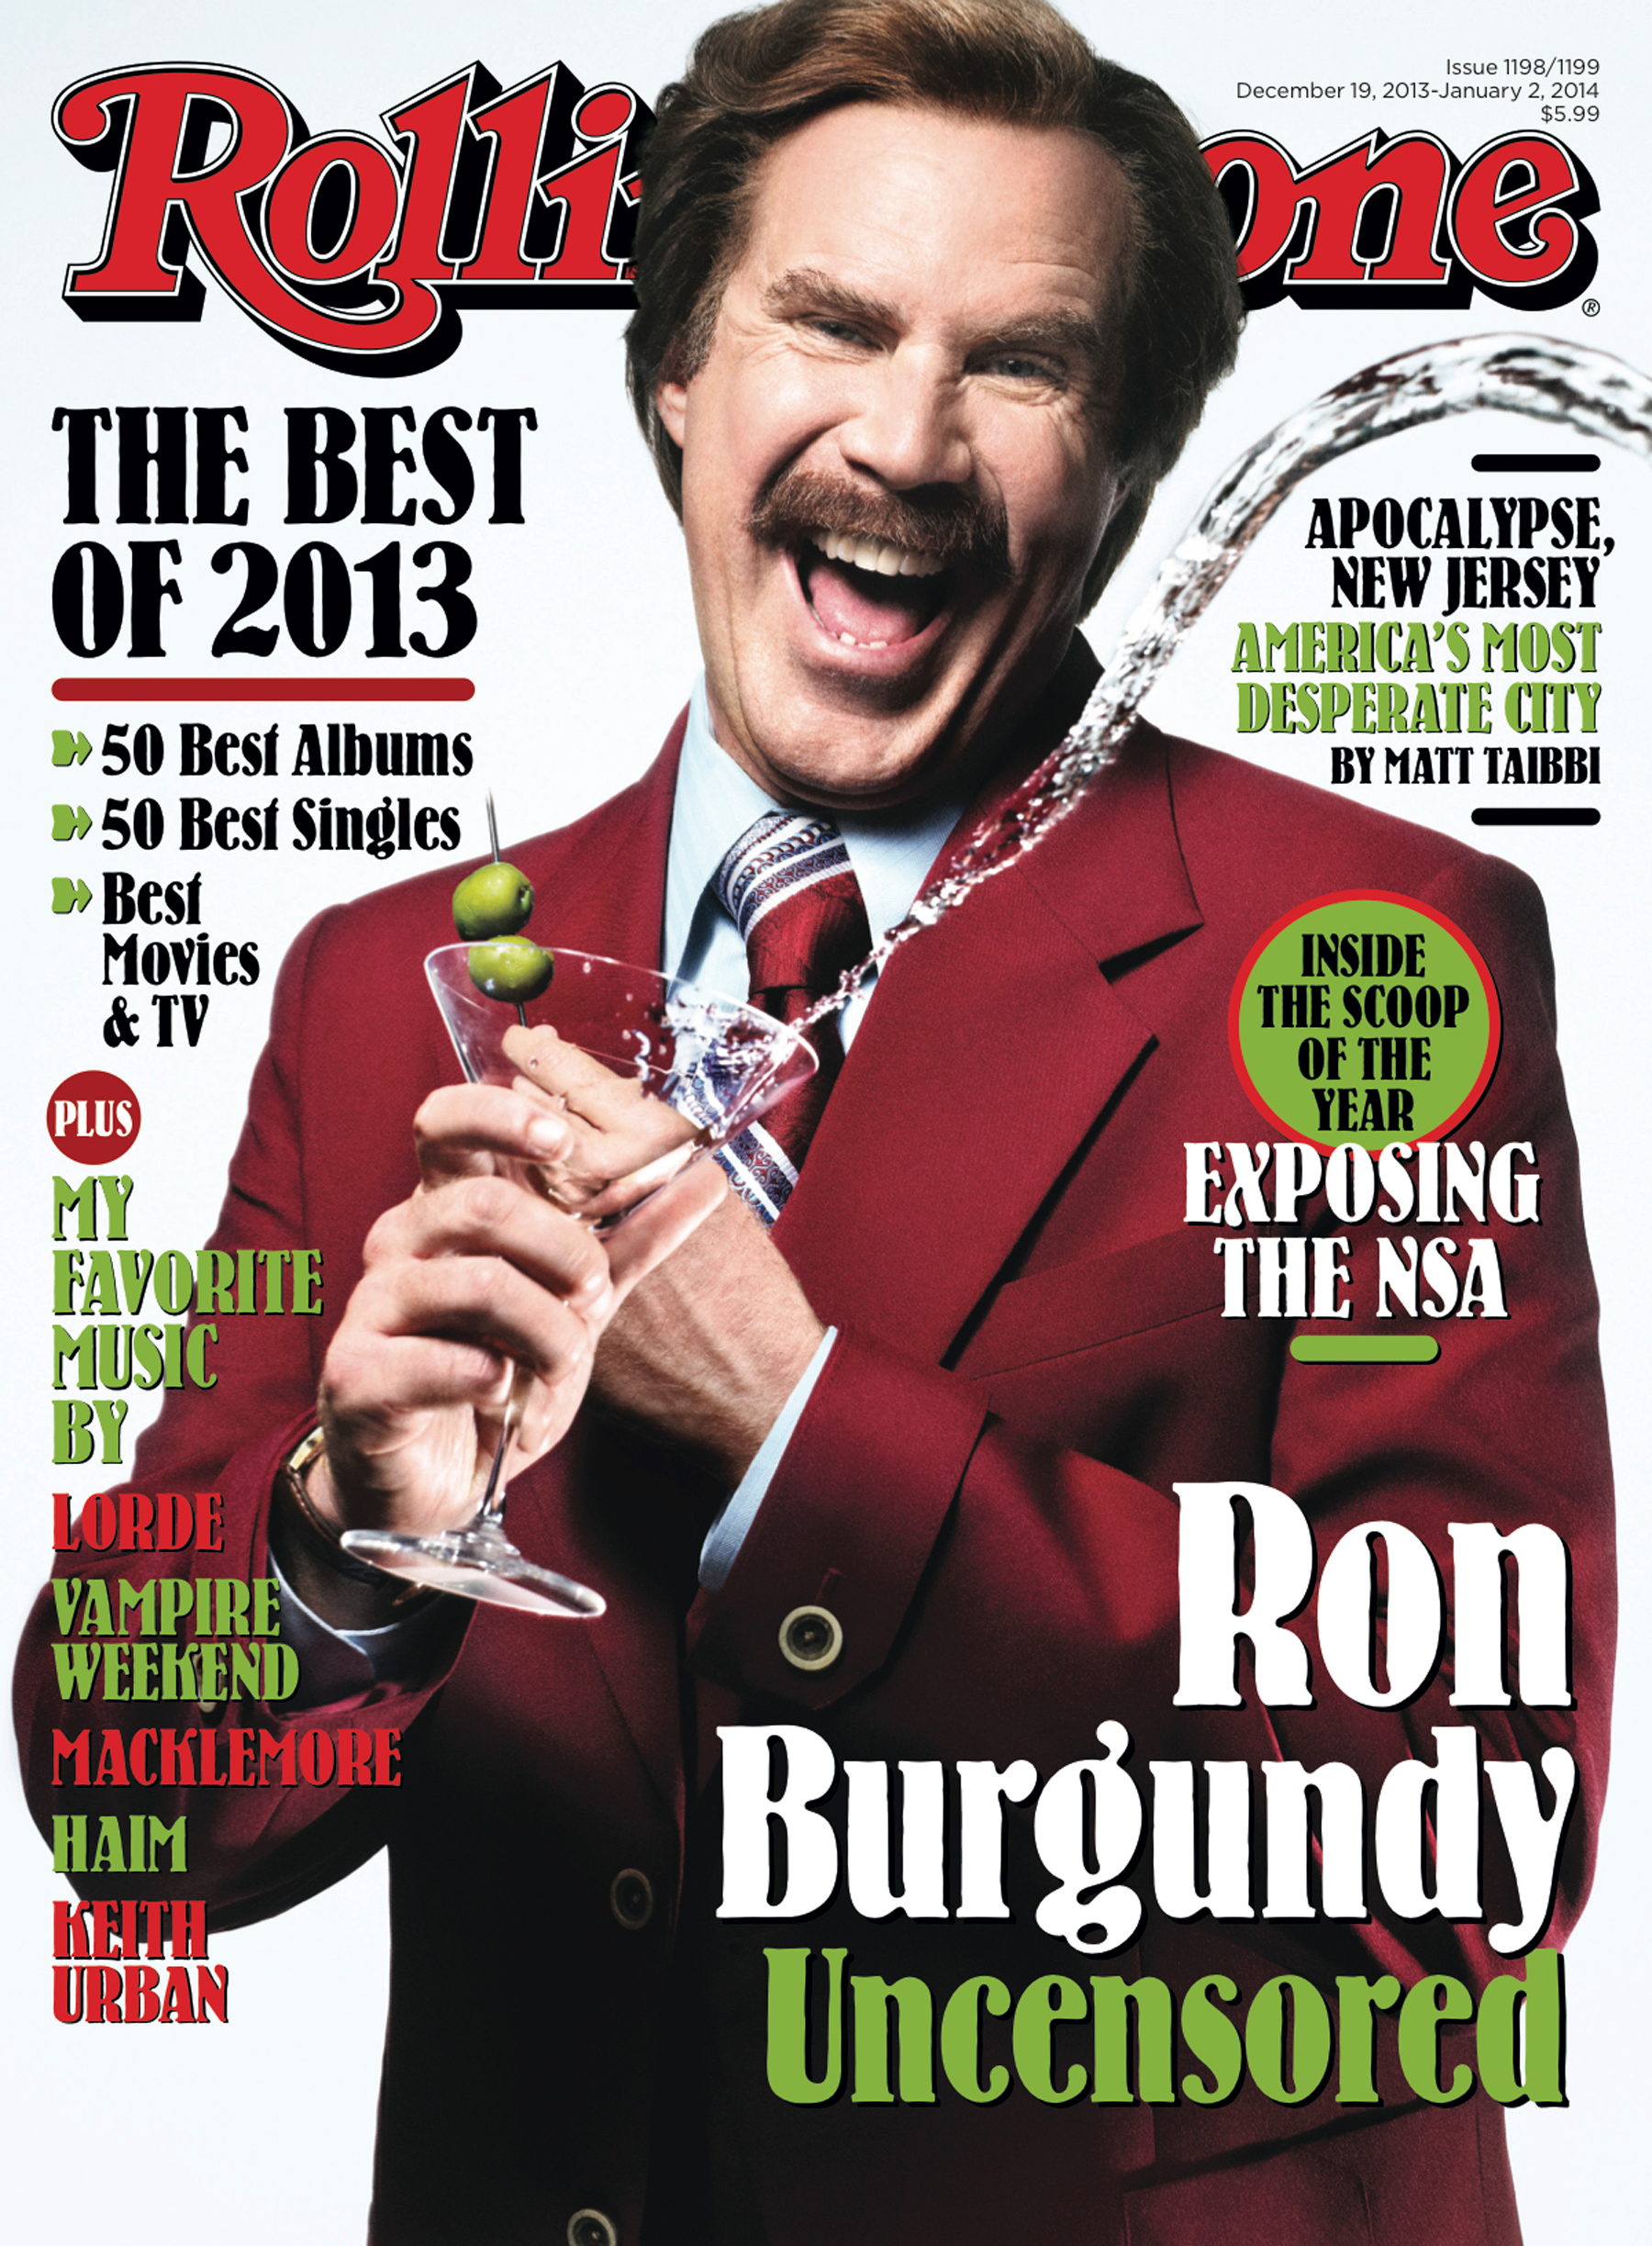 Ron Burgundy Uncensored: Inside the New Issue of Rolling Stone